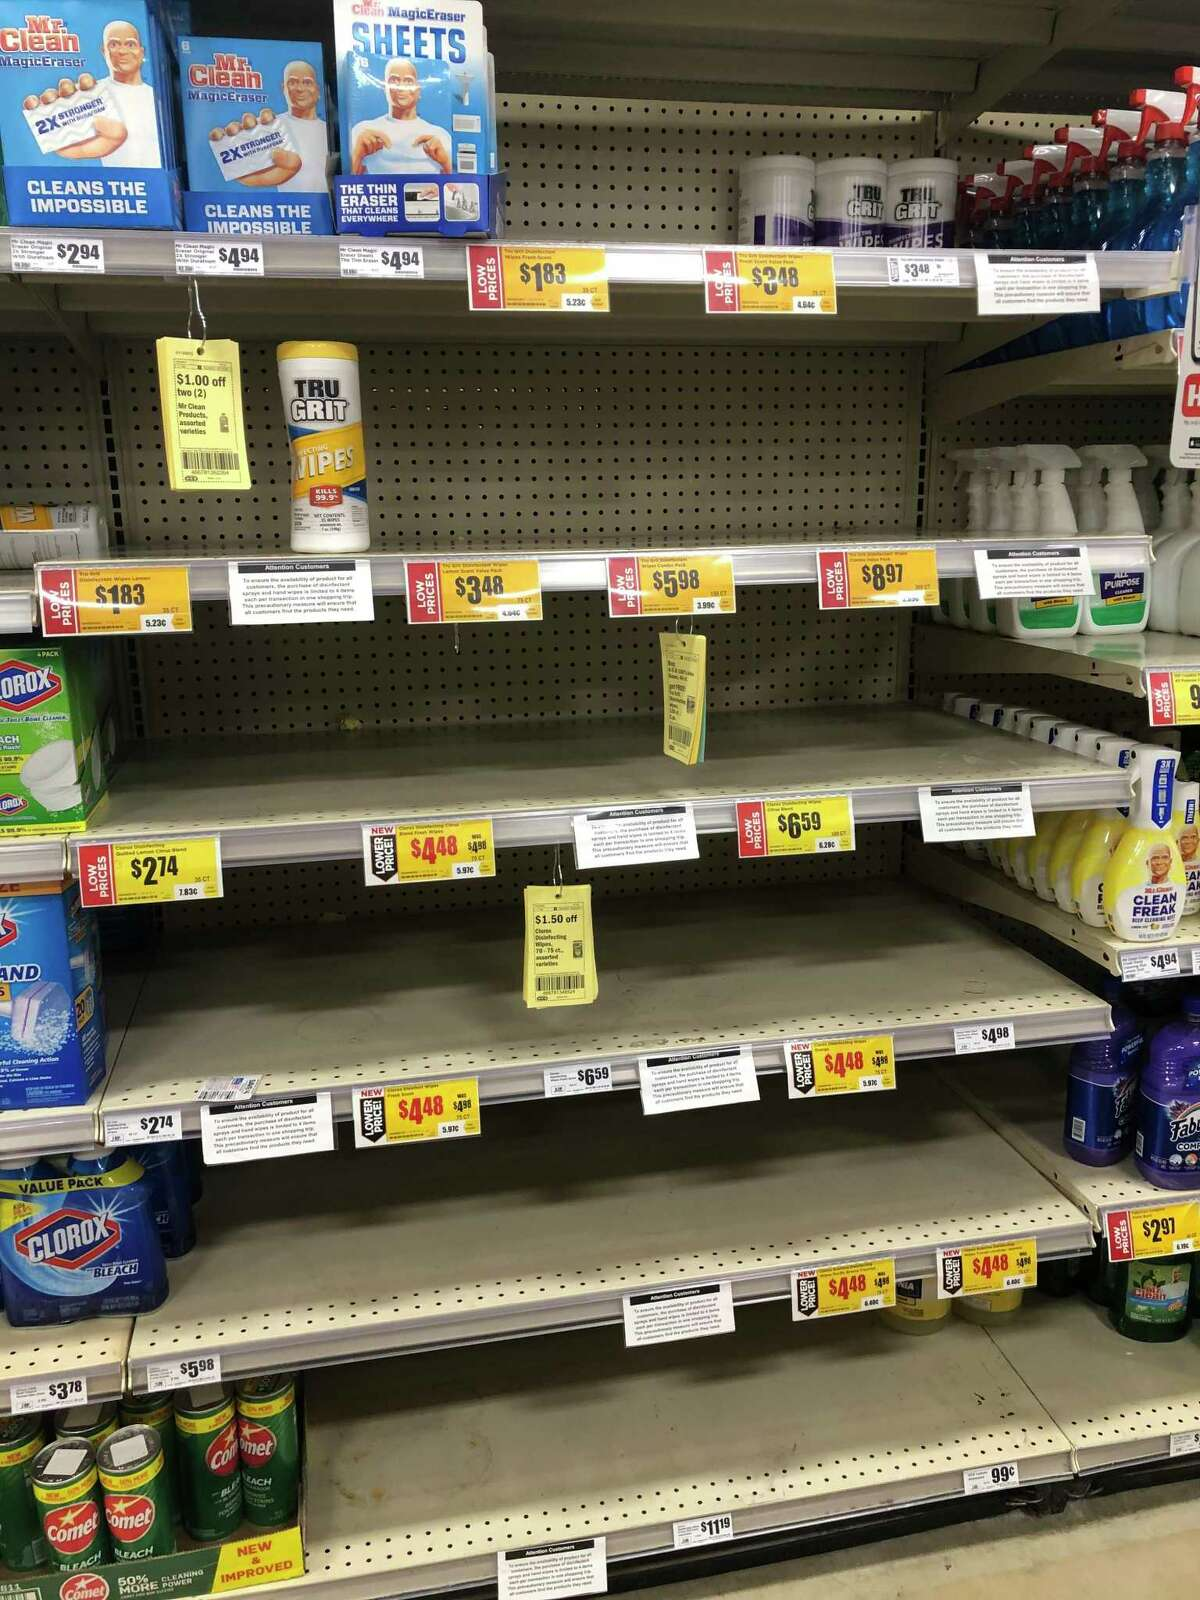 Shelves usually stocked full of surface disinfectant wipes were barren Monday at H-E-B's store at Interstate 10 and Wurzbach Parkway.